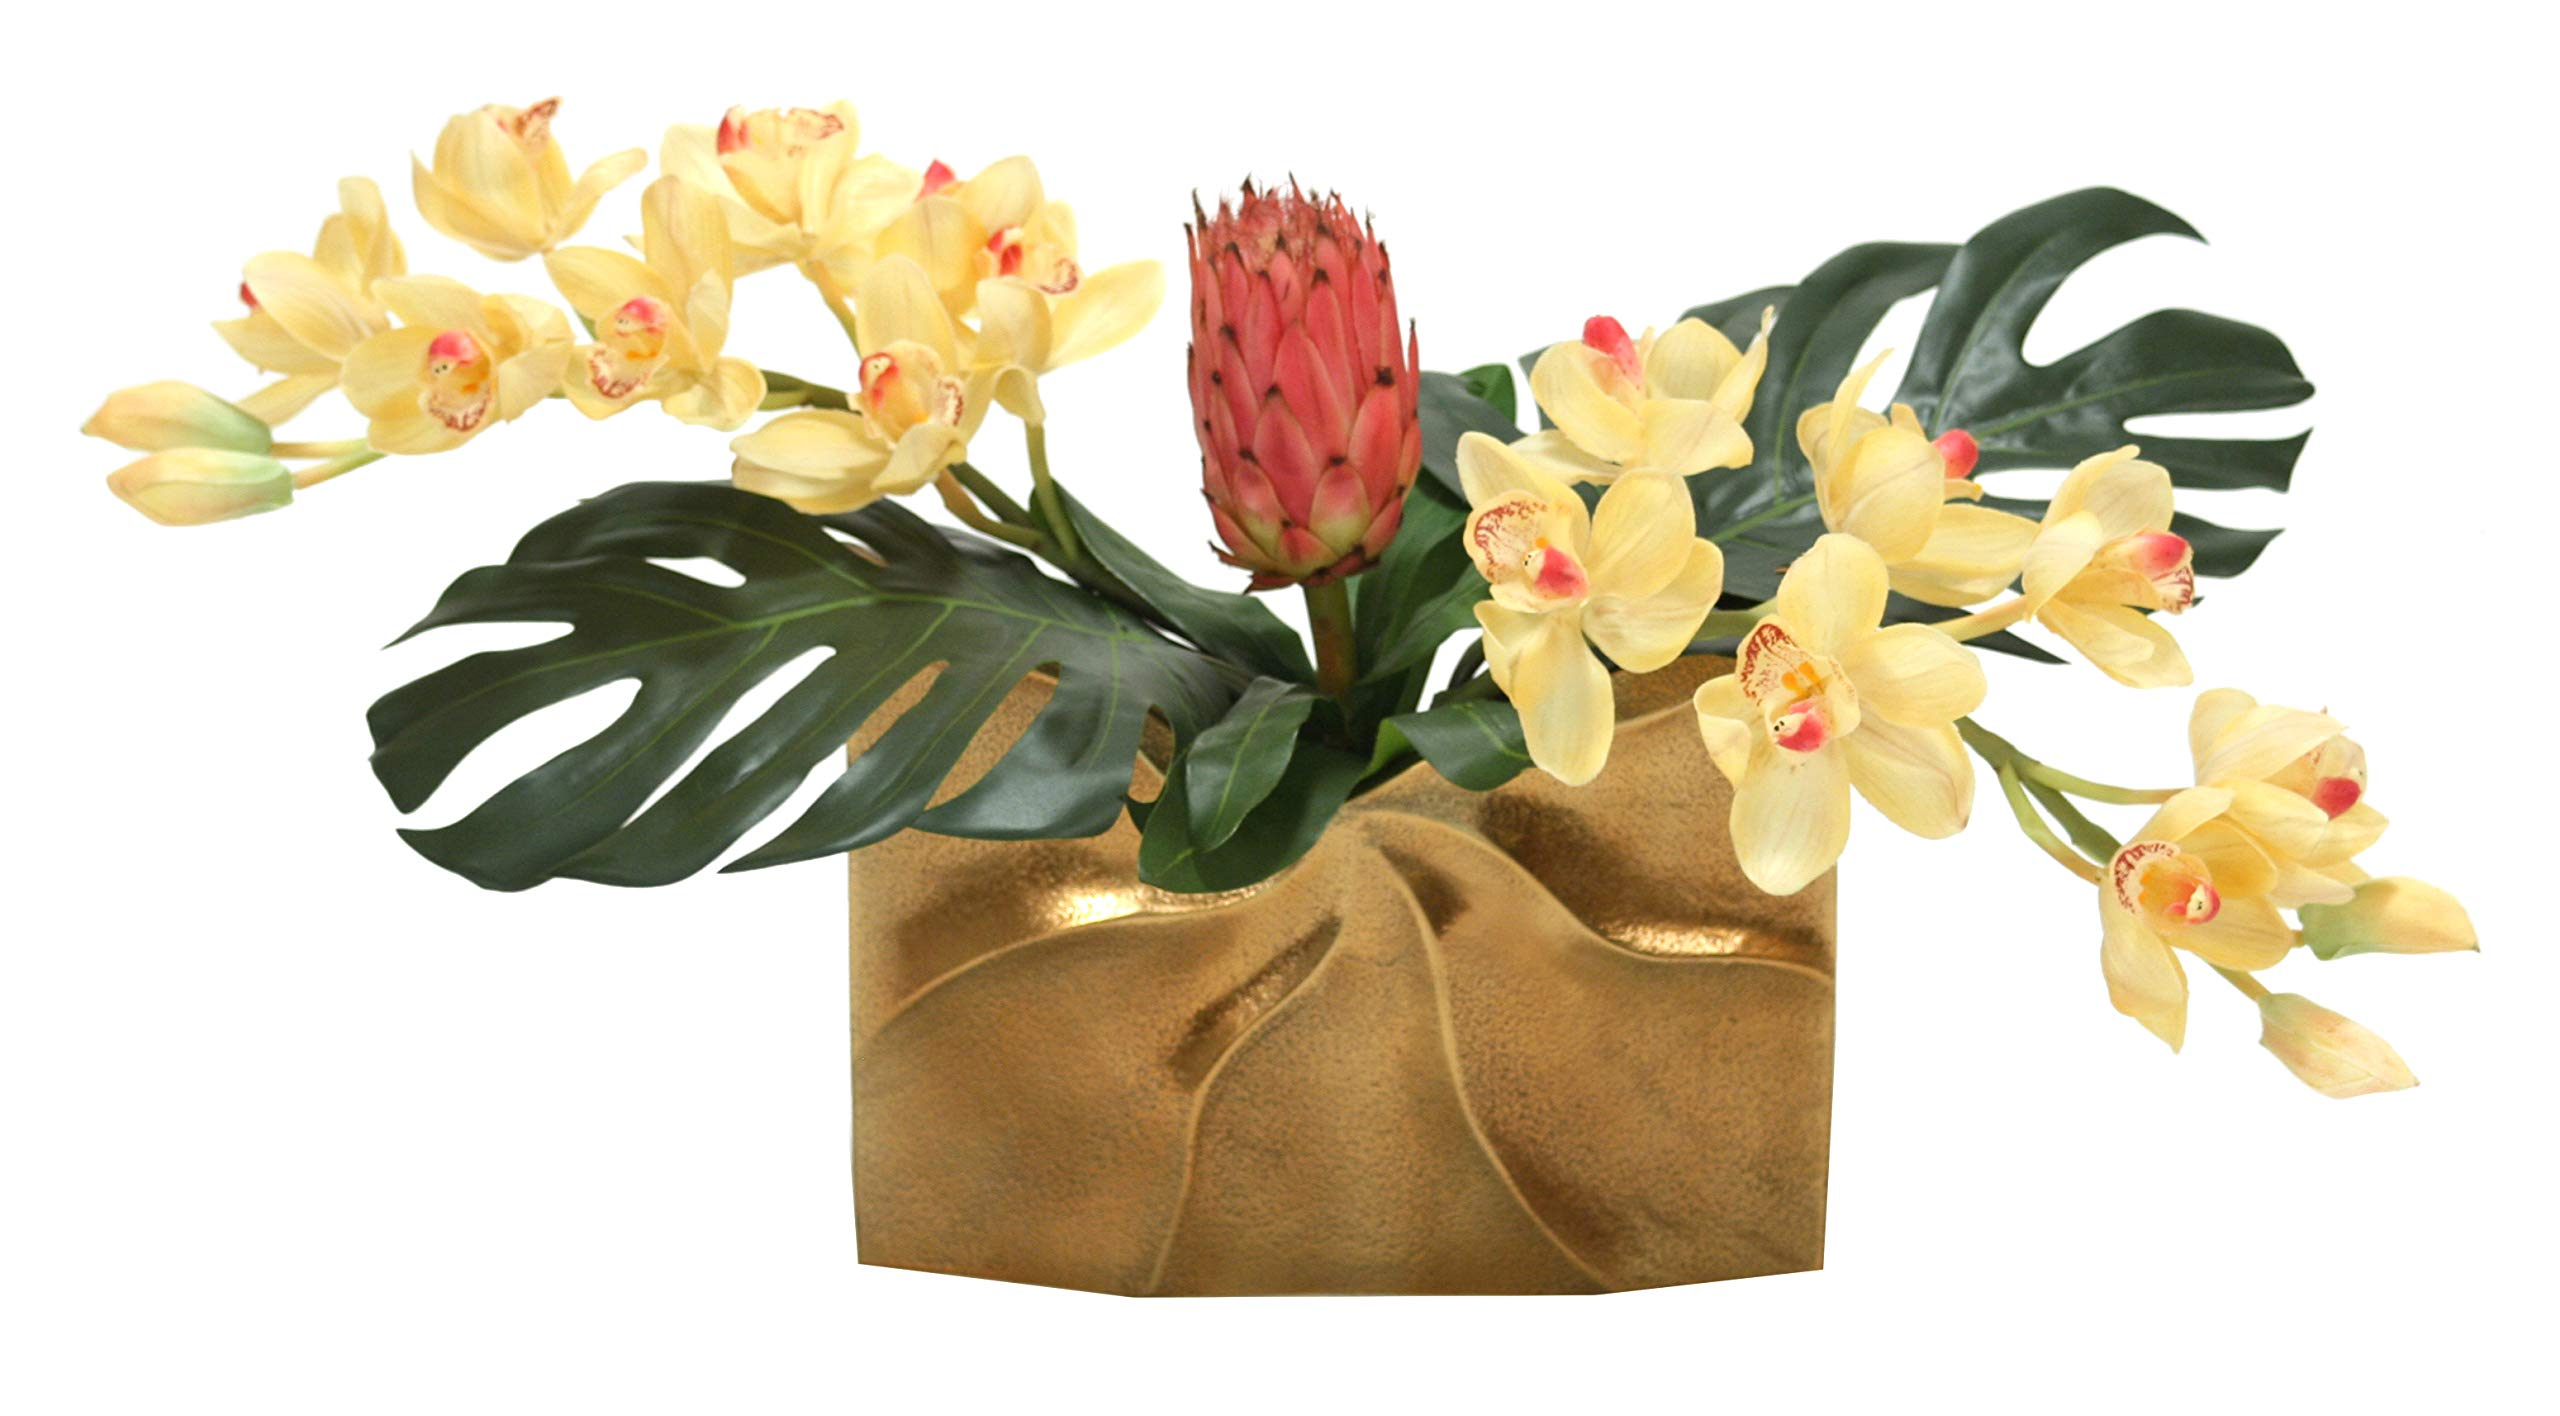 Distinctive-Designs-Tropical-Mix-of-Champagne-Burgundy-Orchids-and-Protea-in-a-Gold-Ritz-Vase